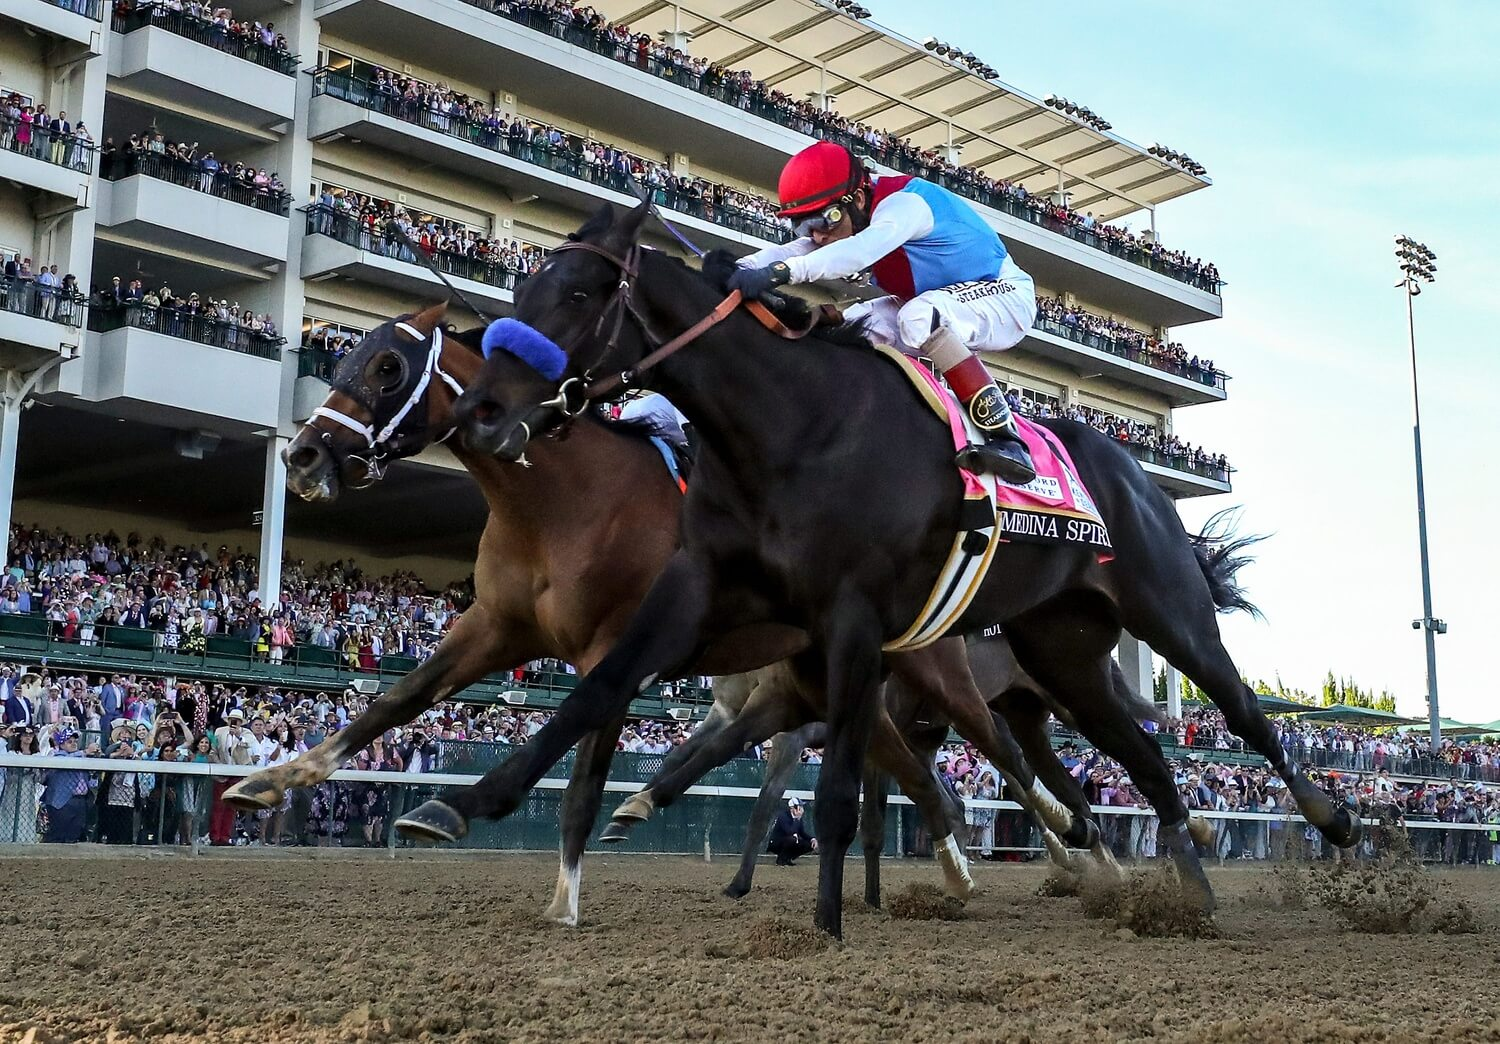 John Velazquez aboard Medina Spirit (8) leads the field down the stretch to win the 147th running of the Kentucky Derby at Churchill Downs. . - Louisville Courier Journal-USA TODAY Sports